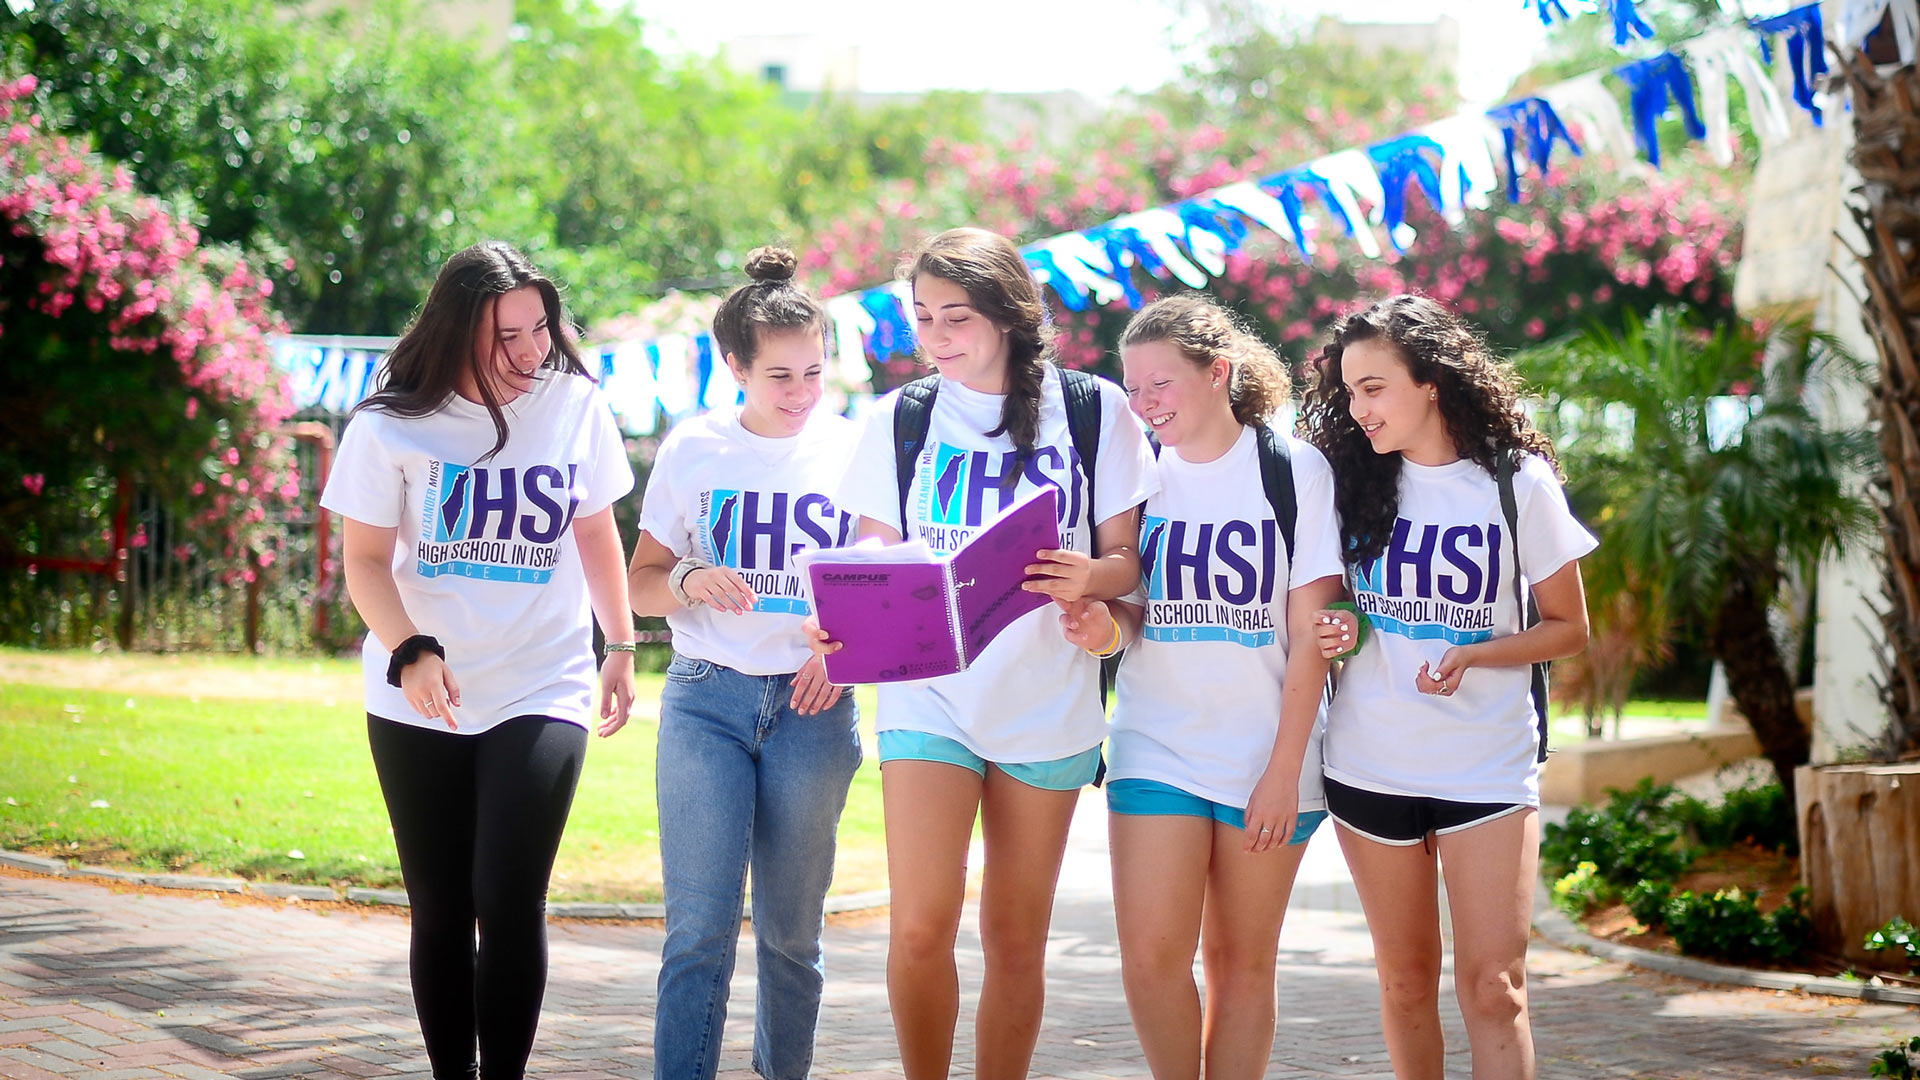 HSI students